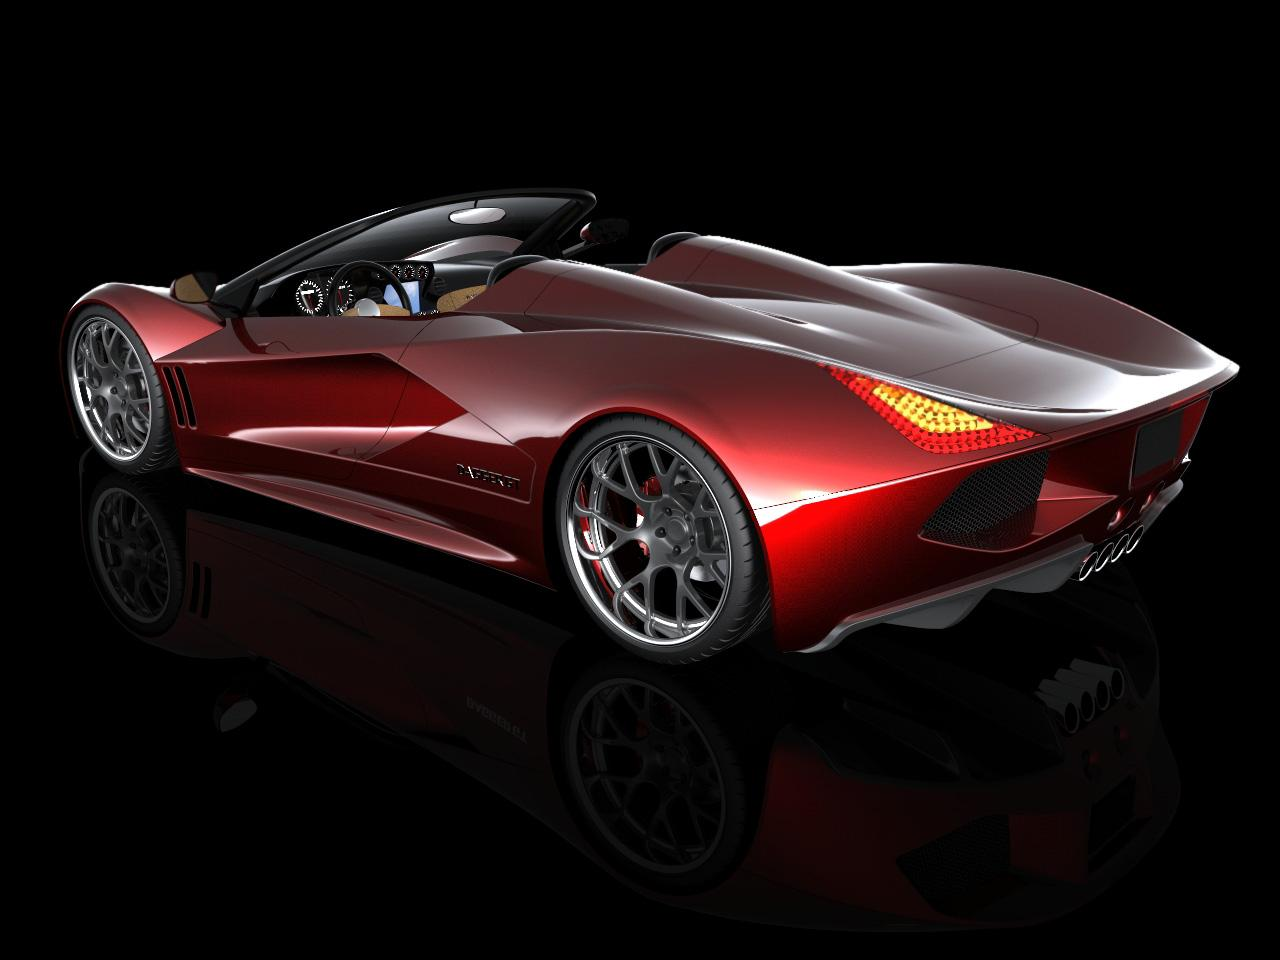 2 000 Bhp Dagger Gt Supercar Reaches 300 Mph Autoevolution